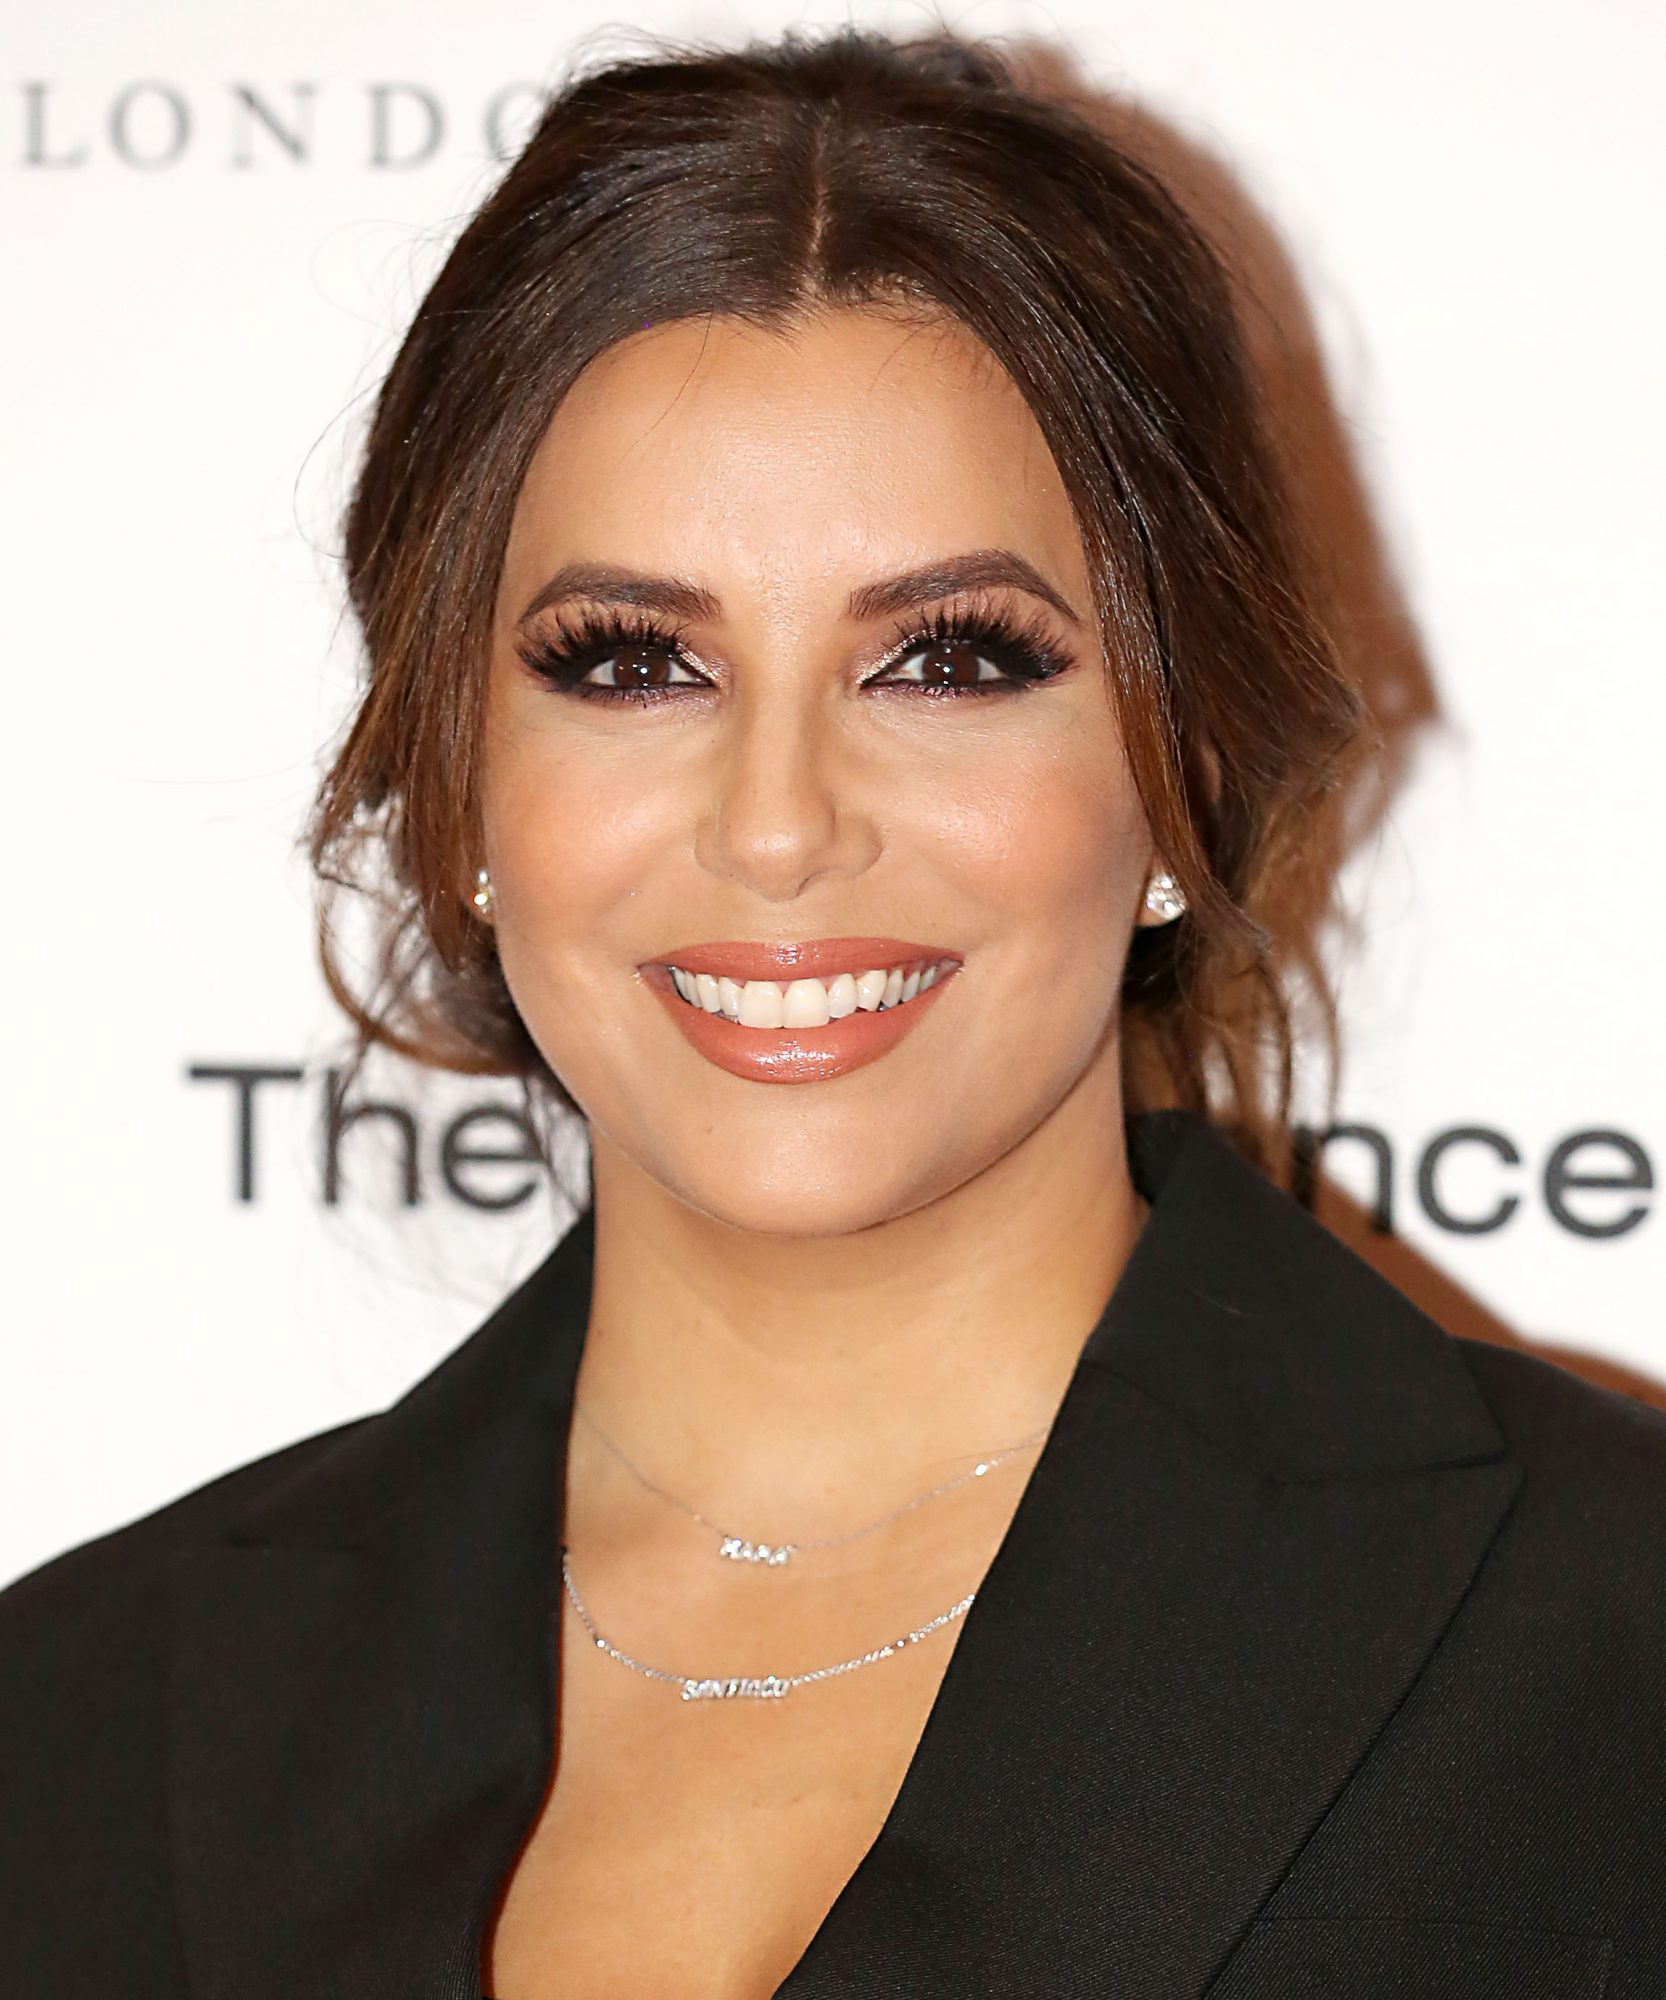 Eva Longoria Uses This Surprising Product to Remove Her Makeup